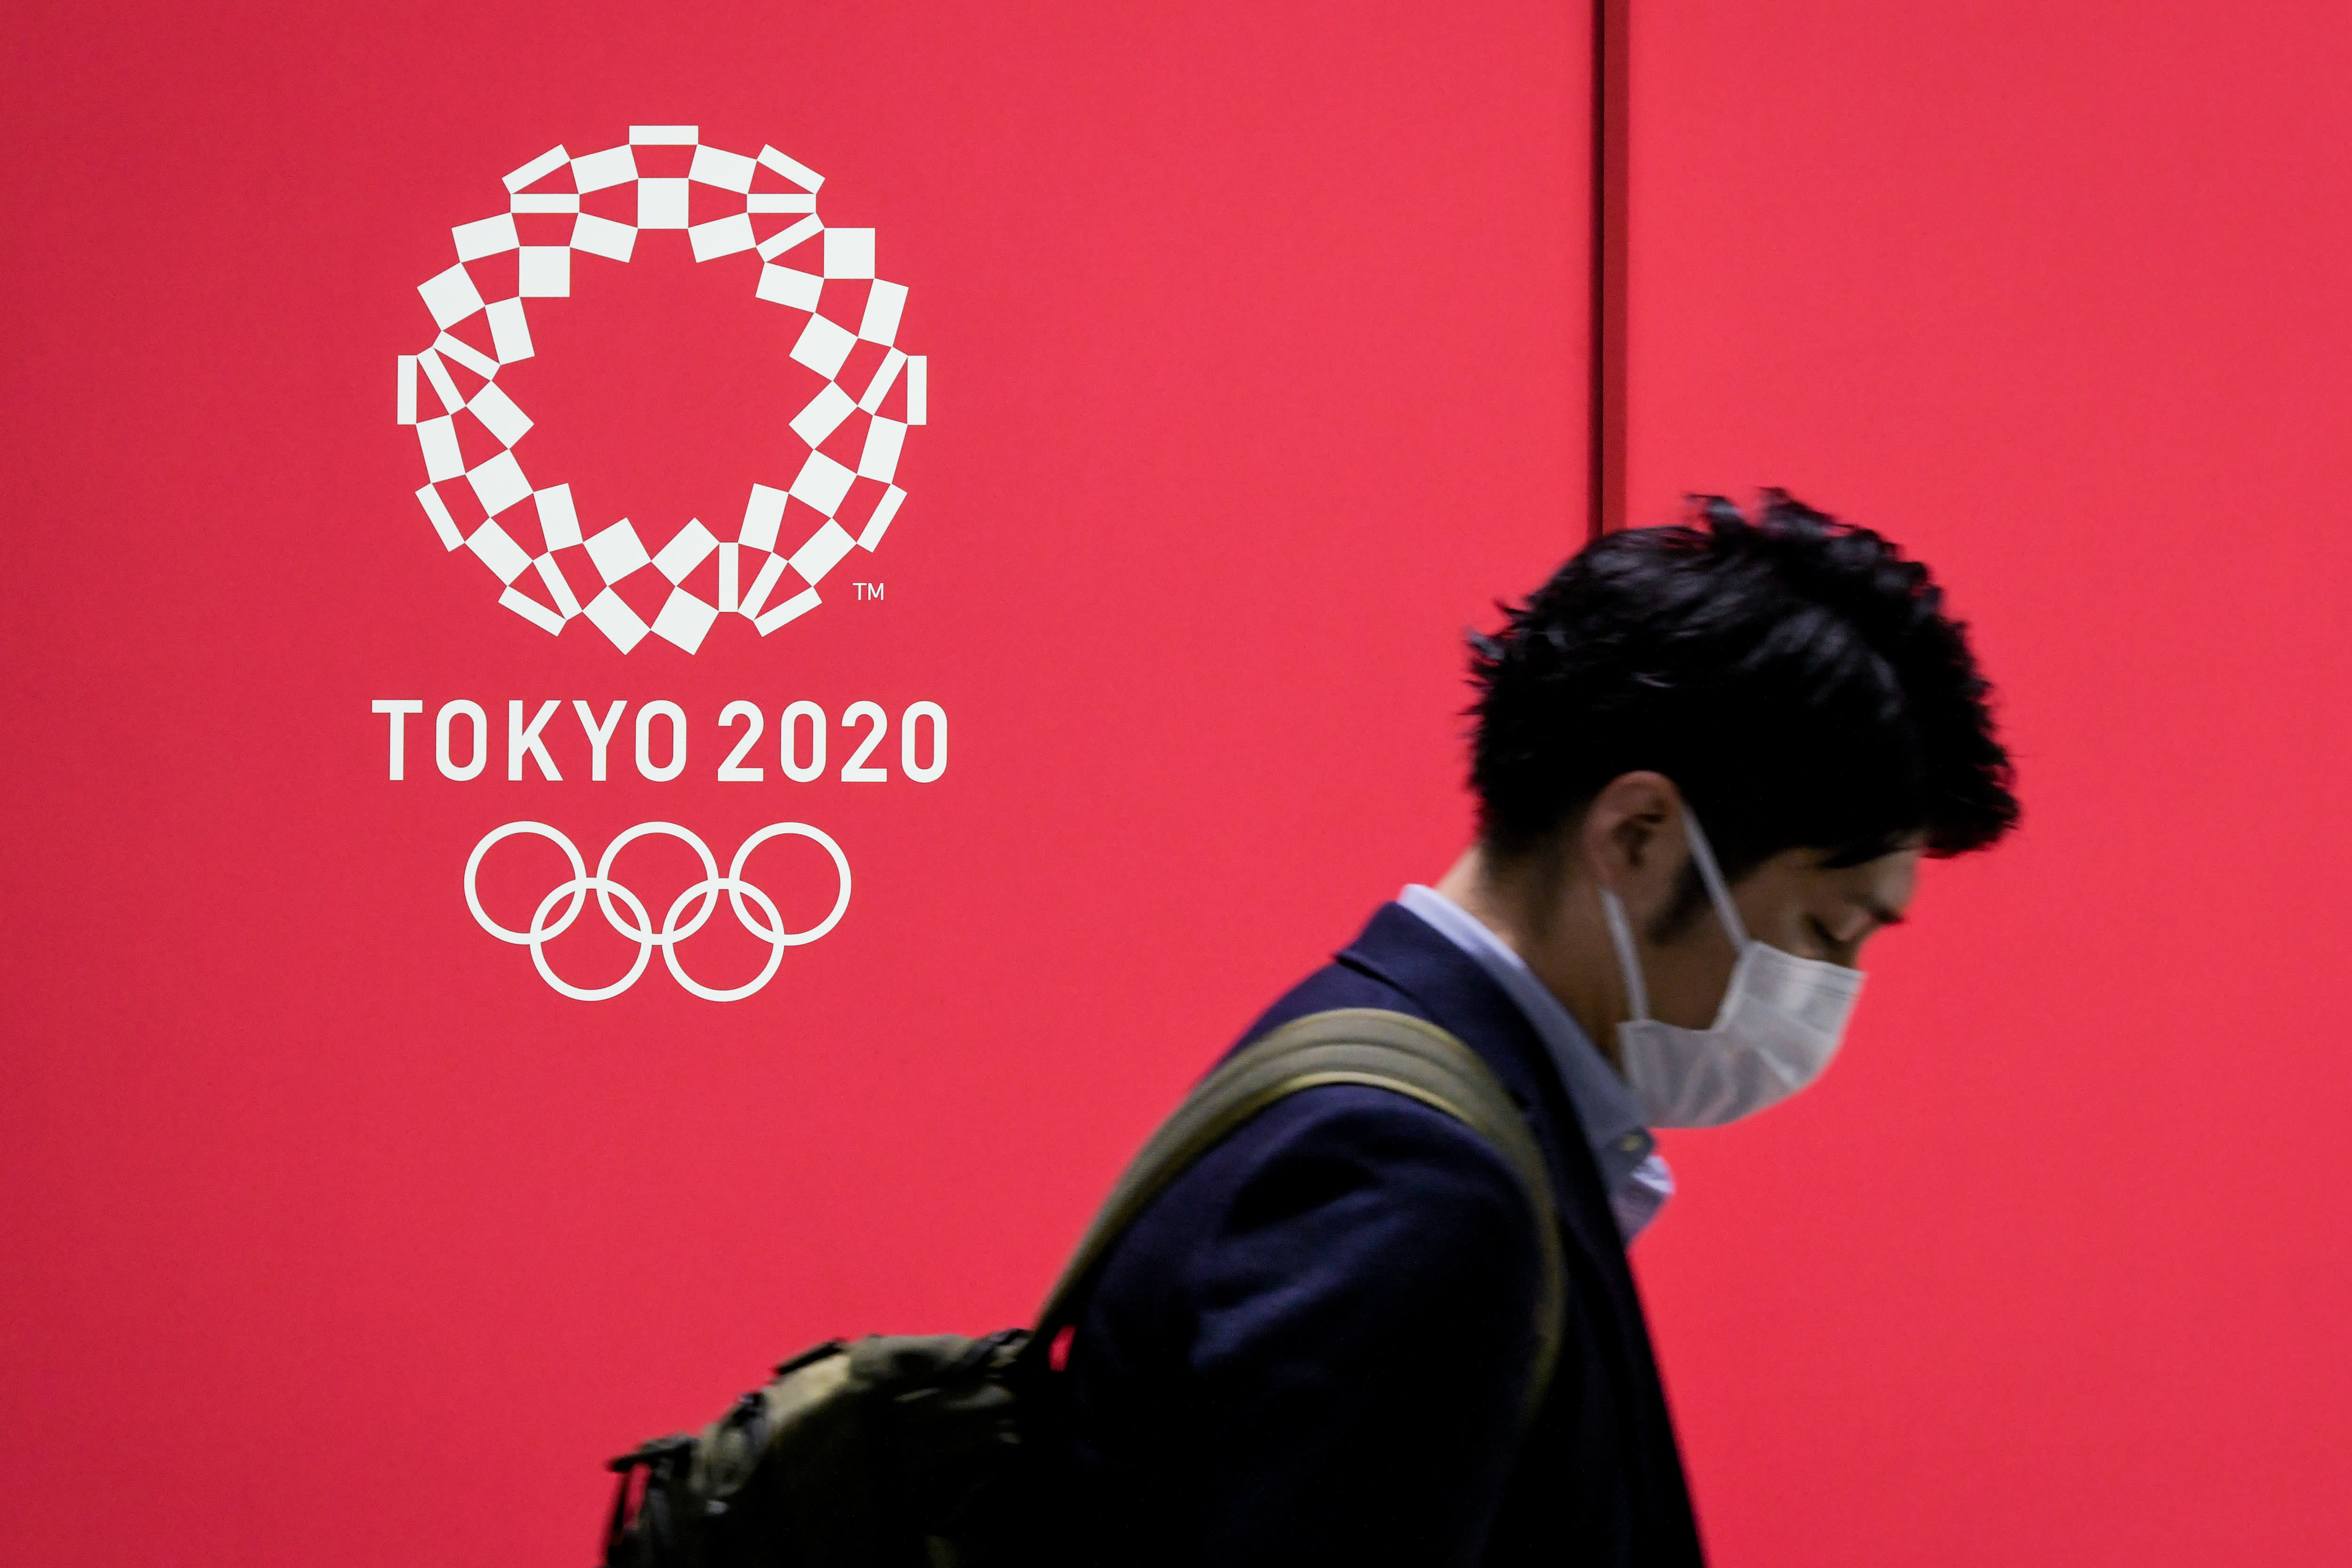 The chief of the Tokyo 2020 organizing committee on Tuesday did not rule out a last-minute cancellation of the Olympics, as more athletes tested posit